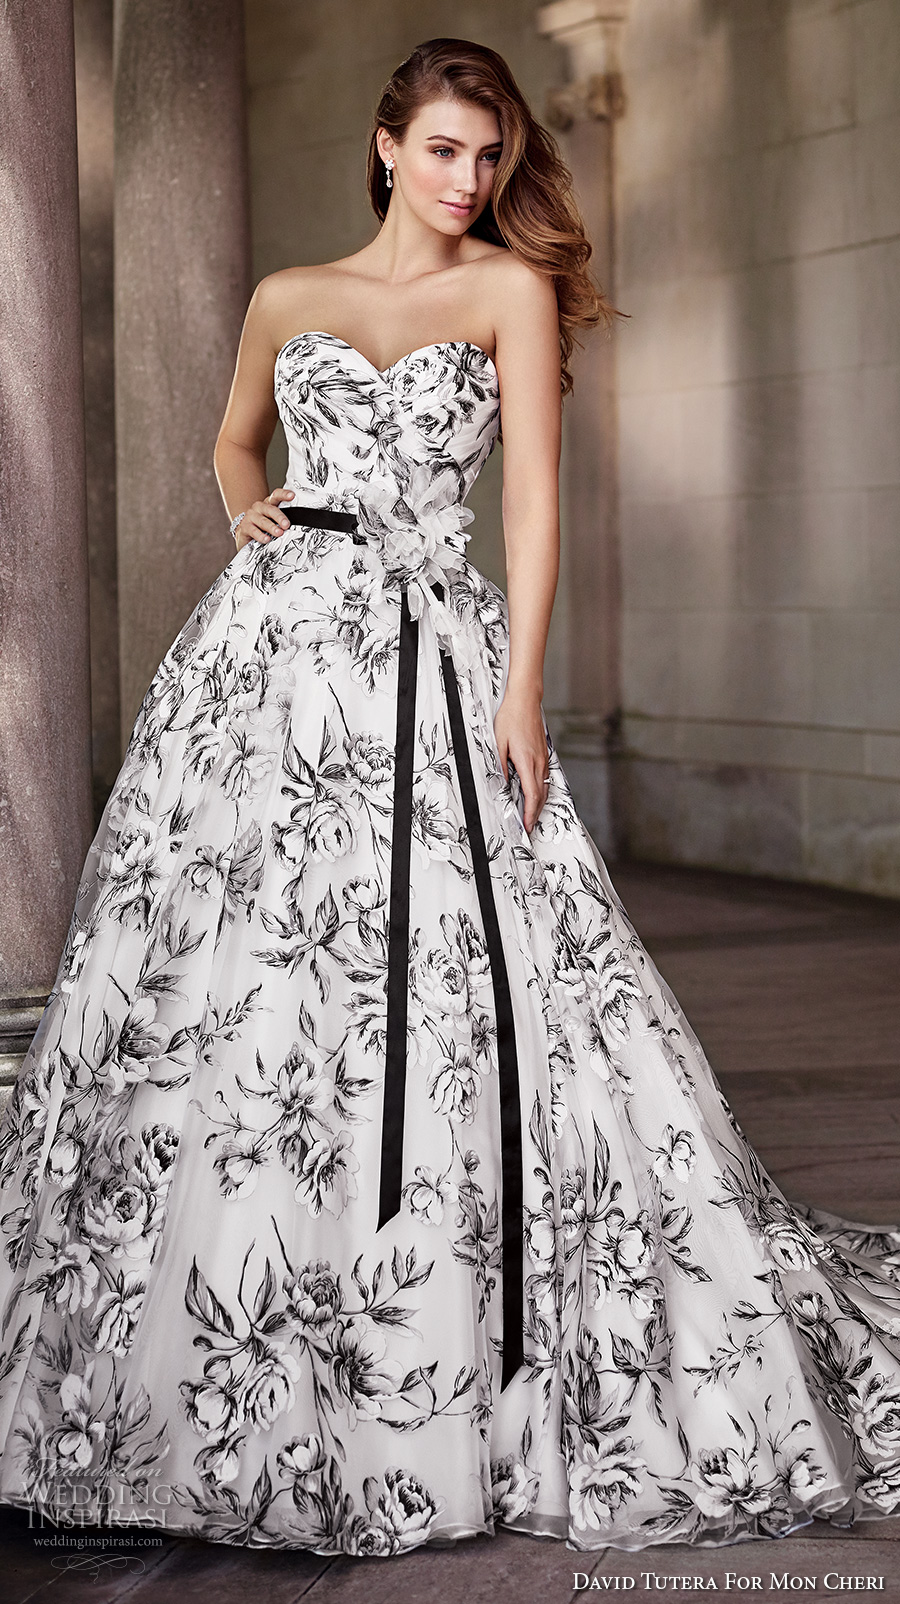 David Tutera Mc Spring 2017 Bridal Strapless Sweetheart Neckline Wrap Over  Bodice Black Floral Print Romantic